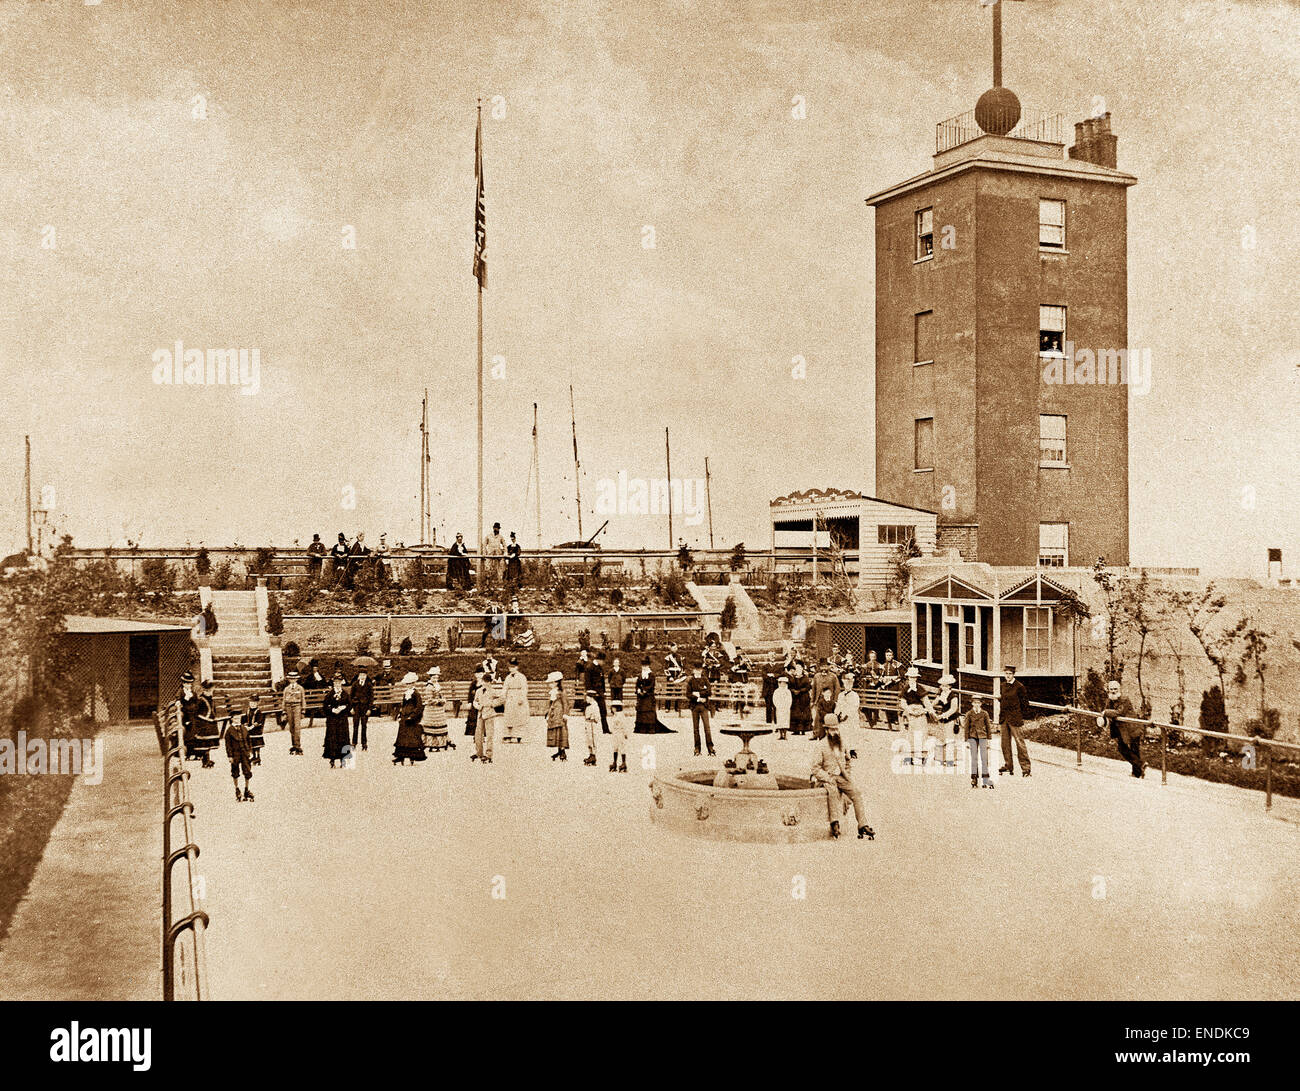 Roller skating rink deal kent early 20th century